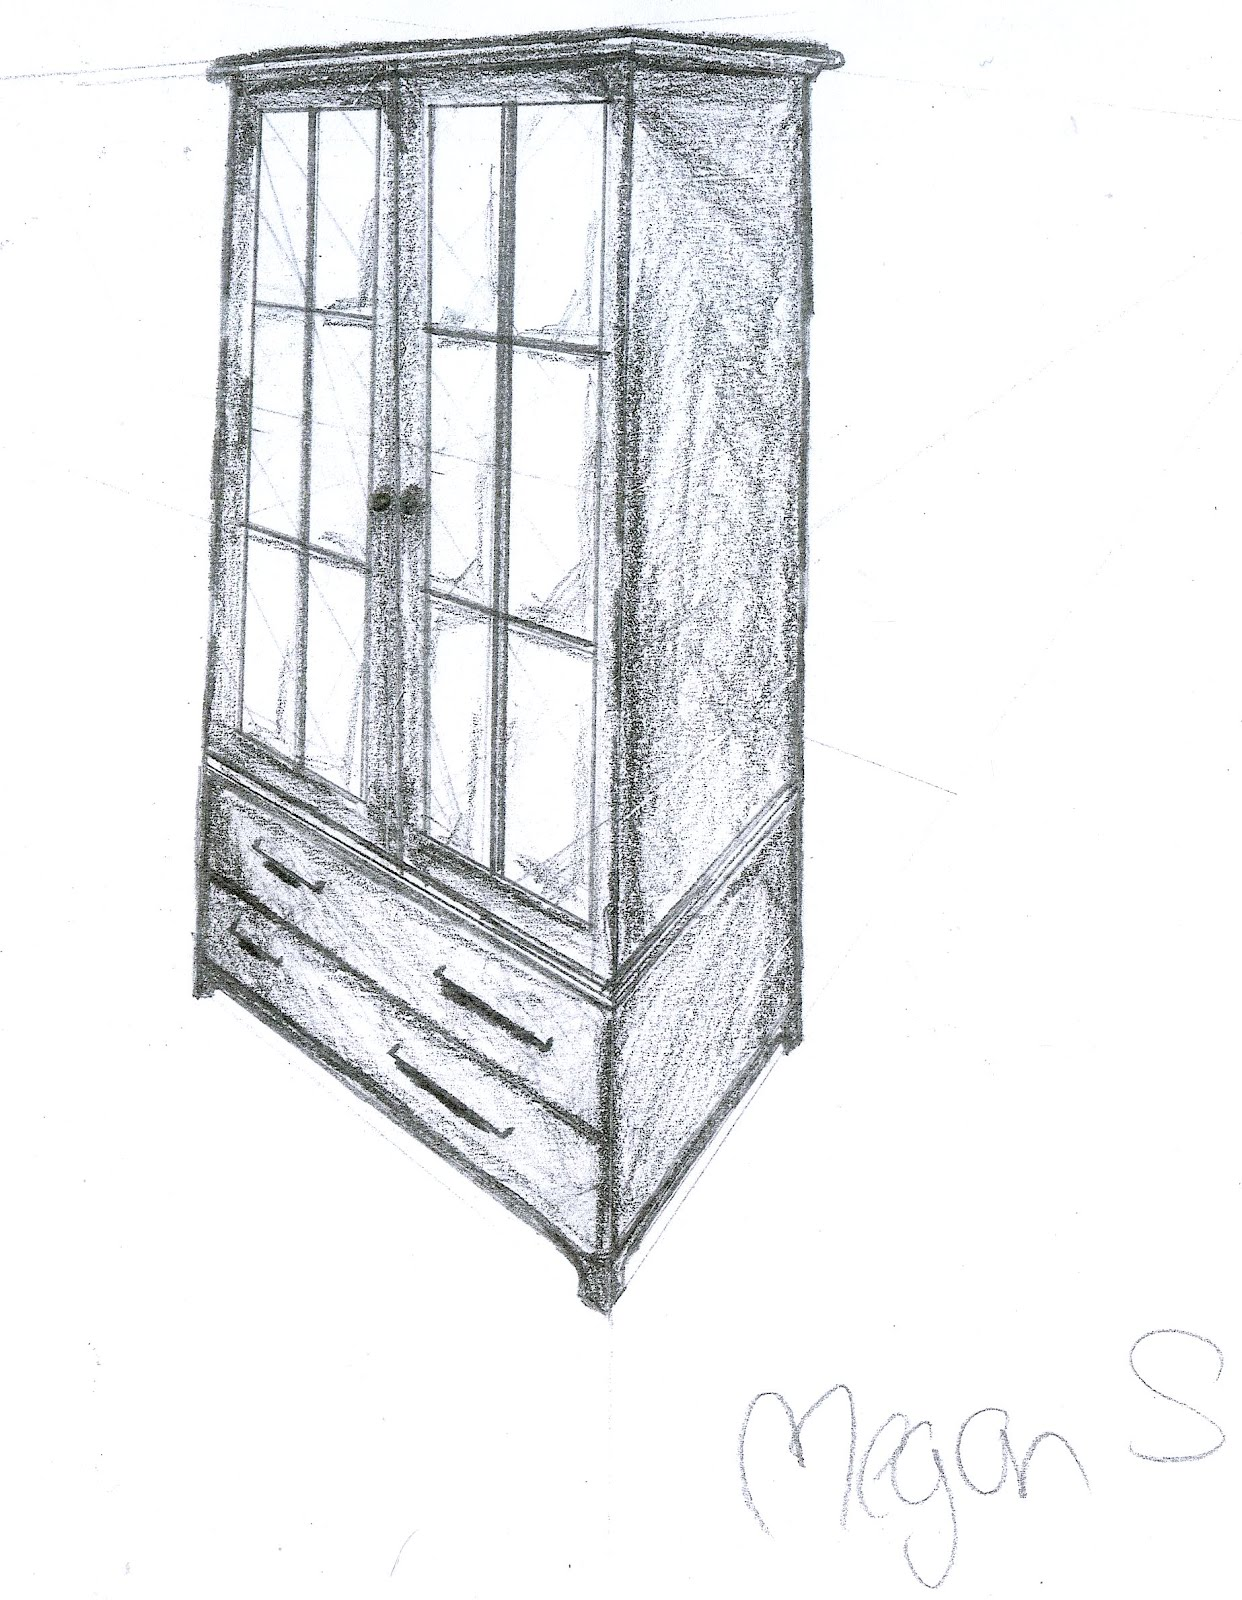 Additional Early Furniture Sketches